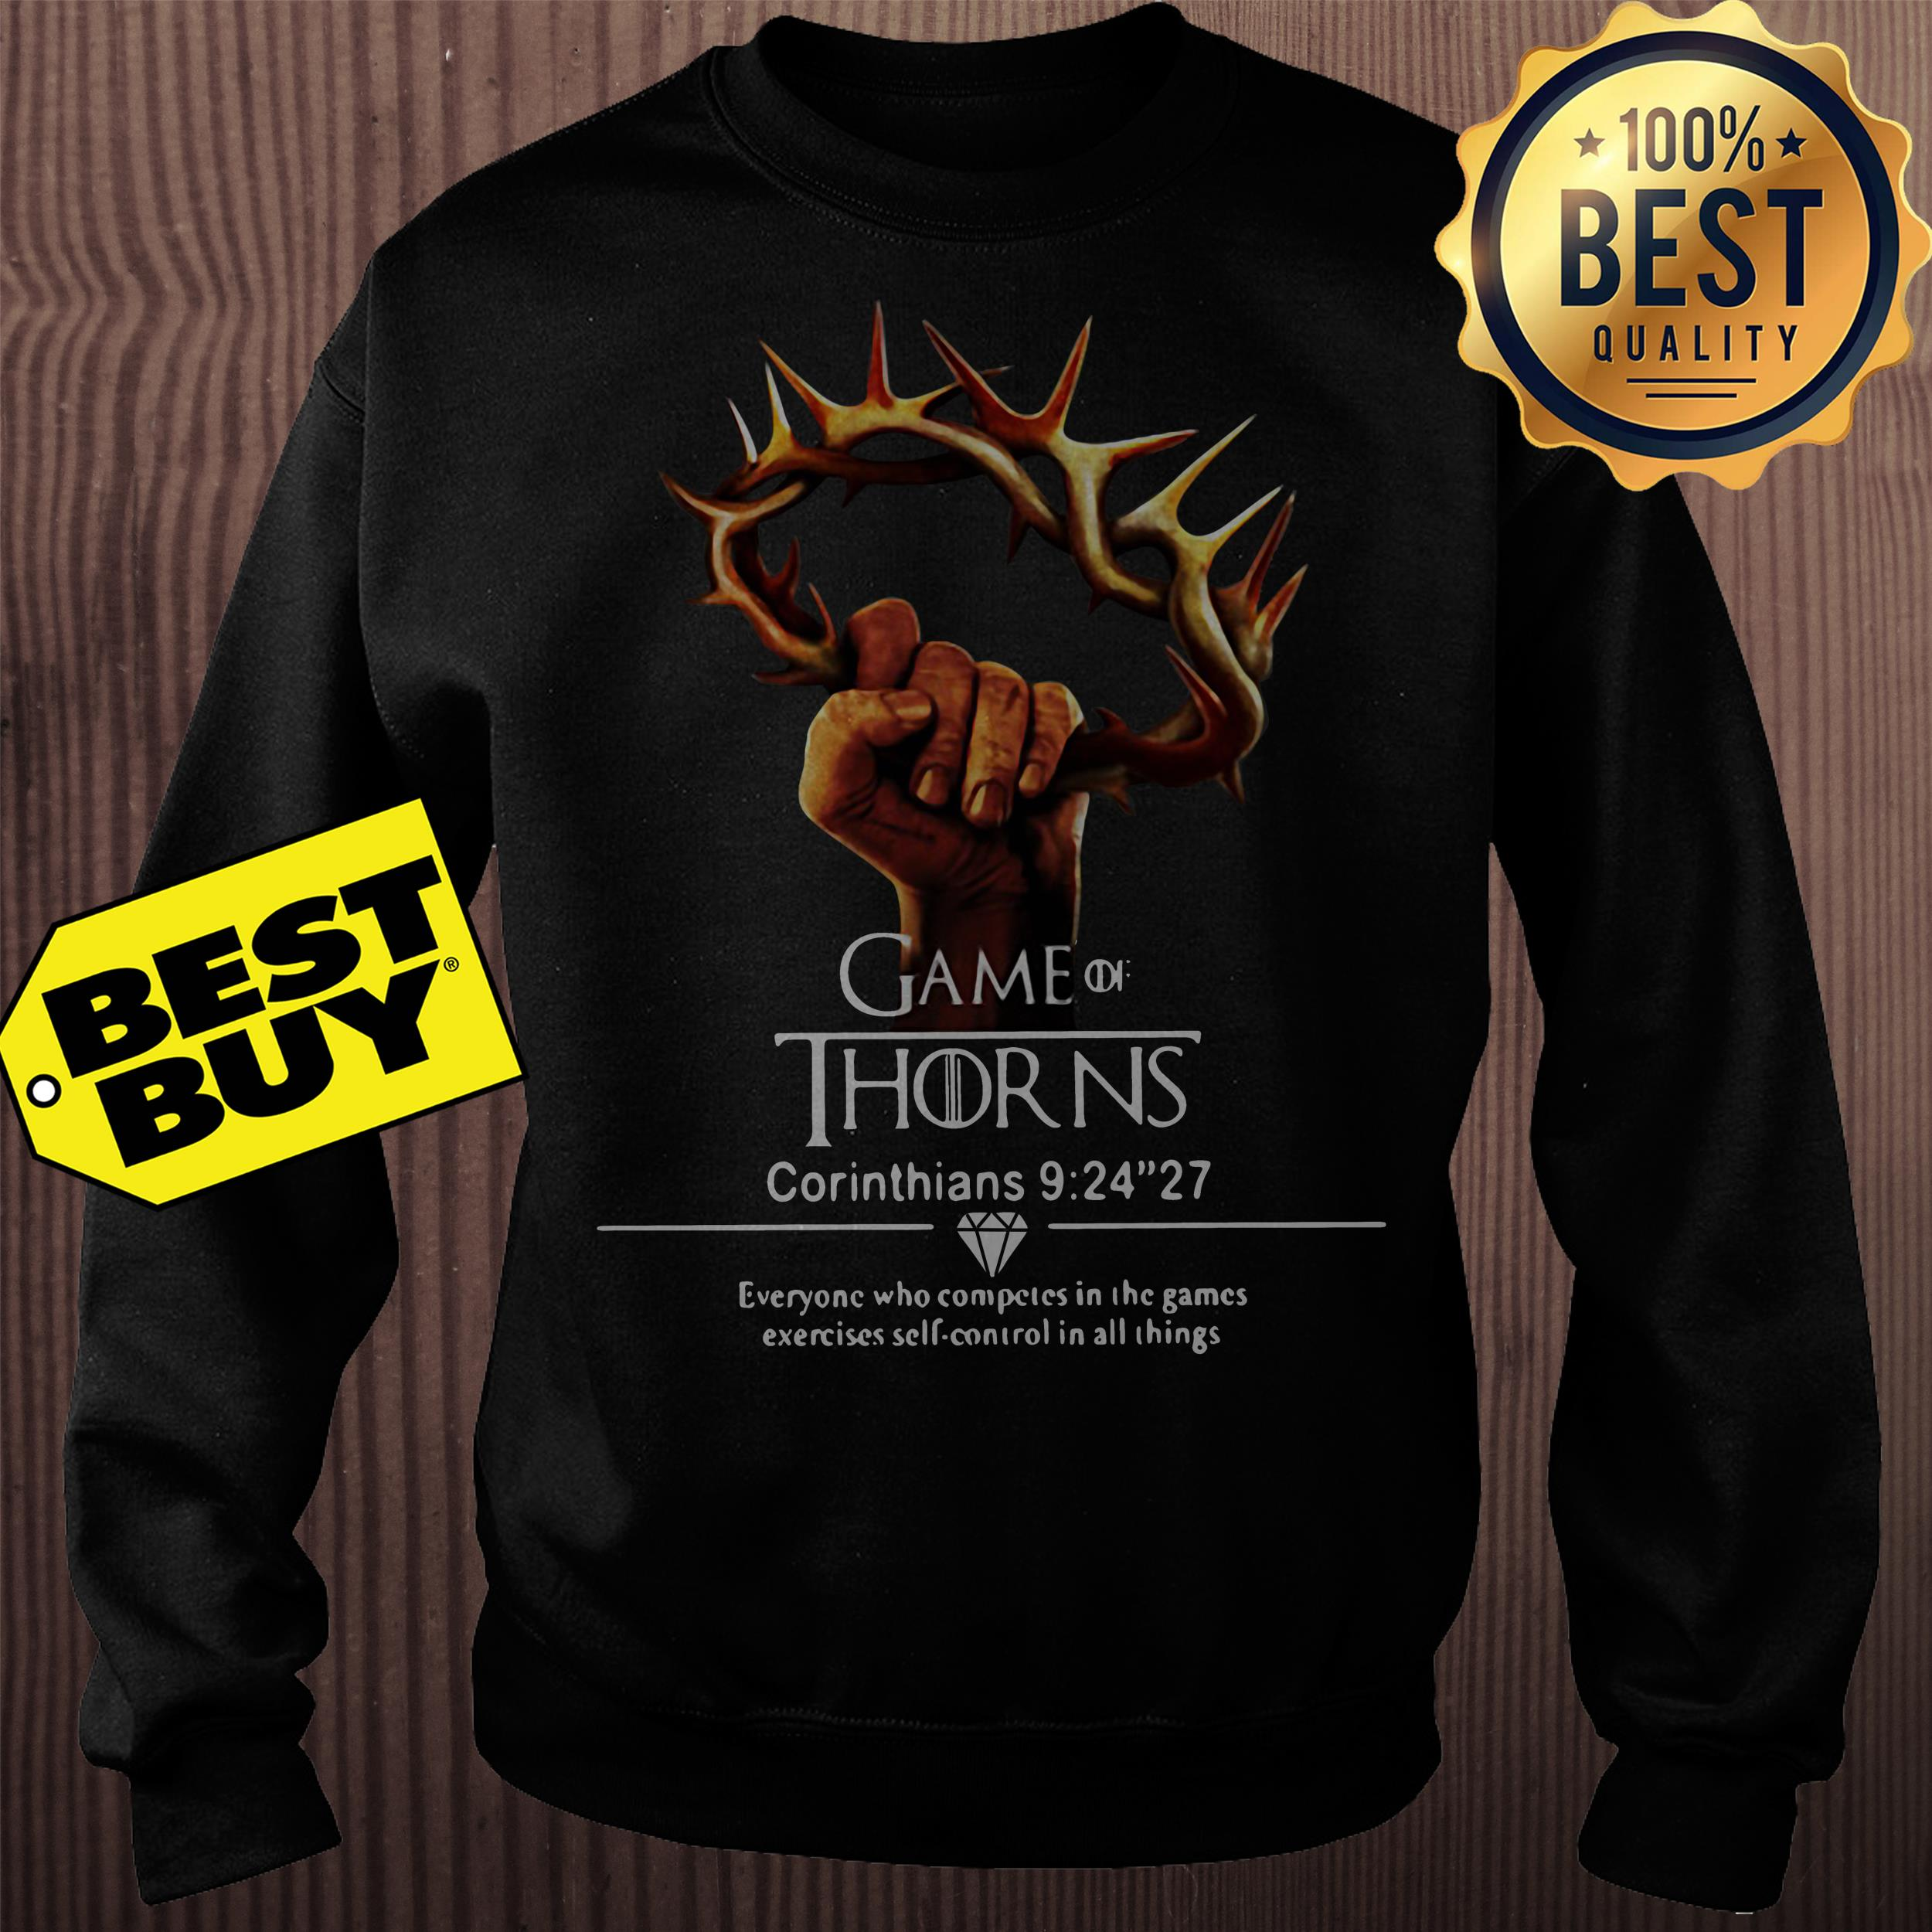 Game of thrones Corinthians 9:24''27 sweatshirt